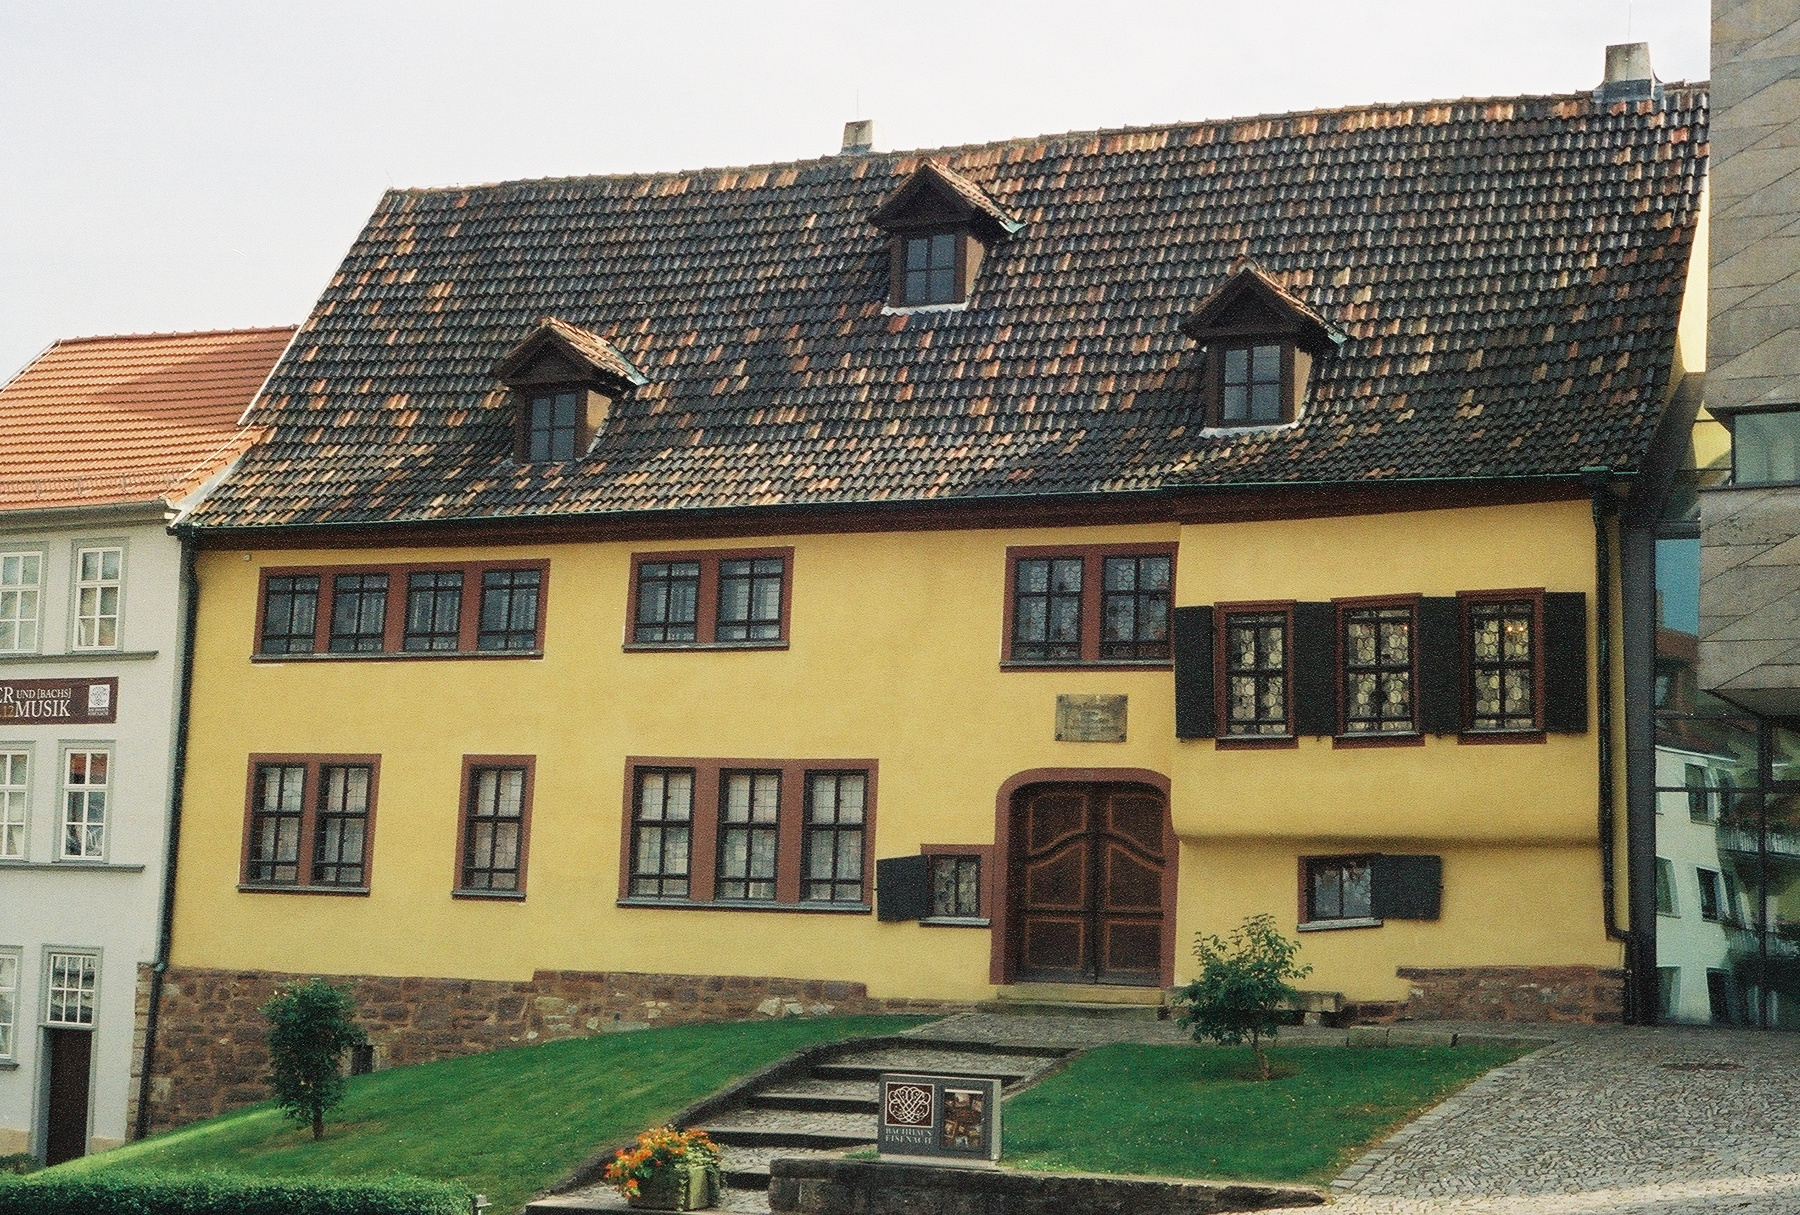 Bacchaus (The Composer Bach's House)